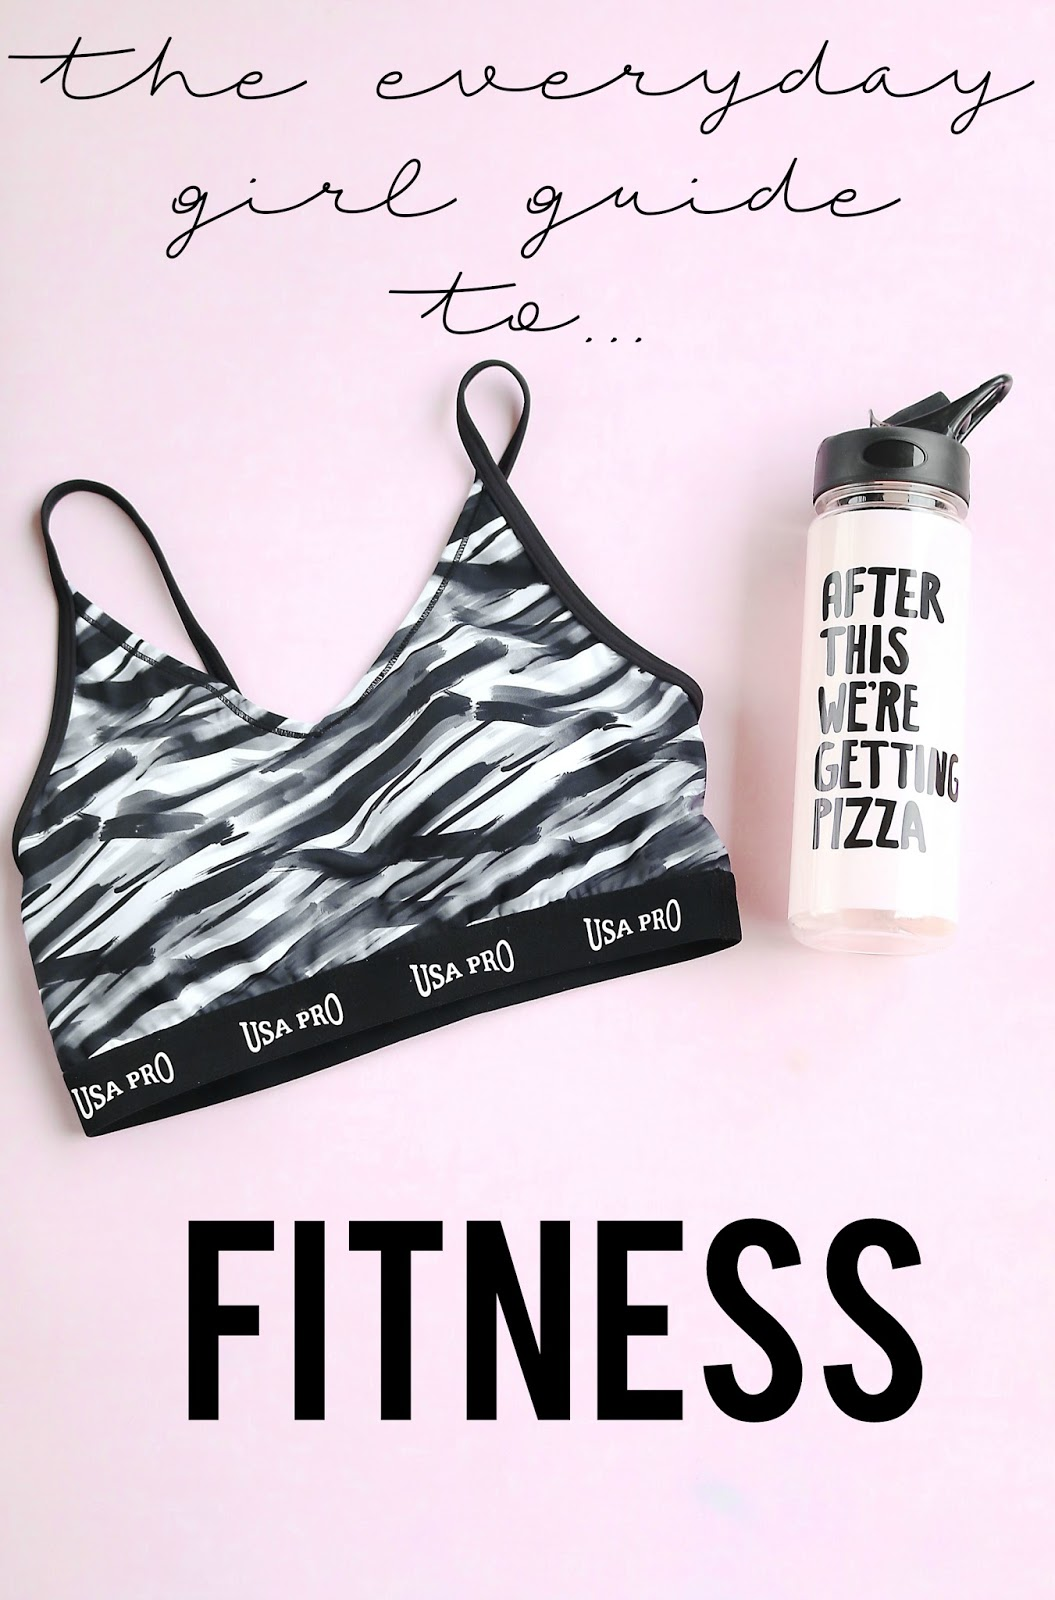 Fitness, Health, Working Out, Wellness, Fitness Advice, Health and Fitness, Fitness Tips, Lifestyle,  getting at fitness routine, how to get into fitness